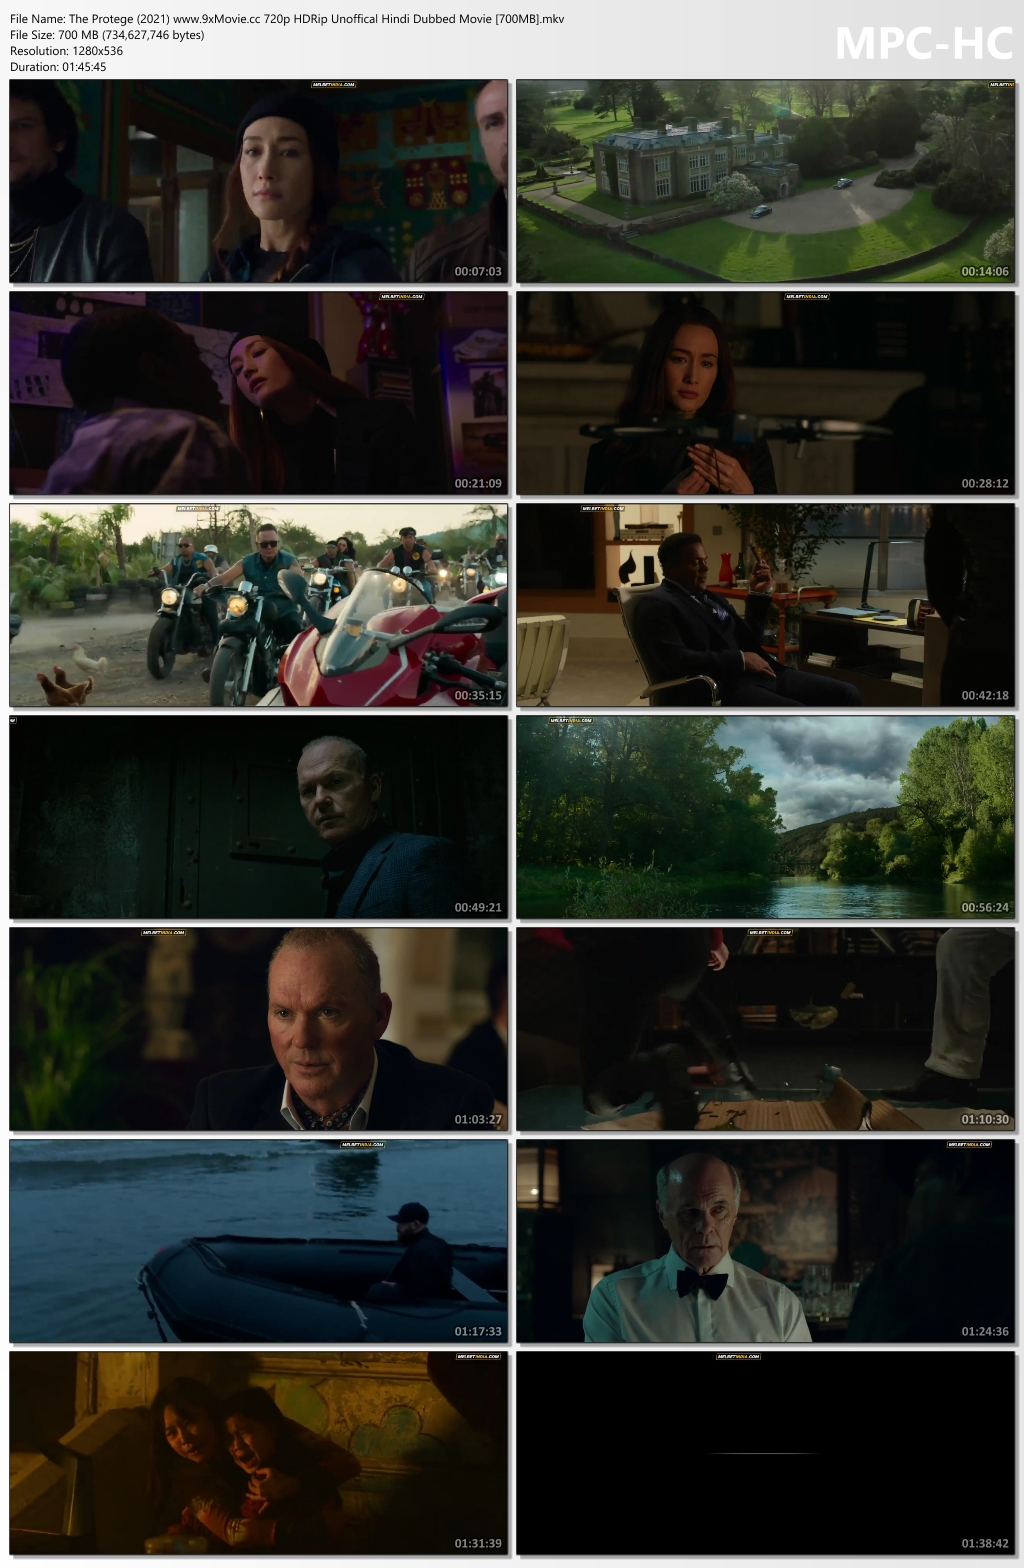 The-Protege-2021-www-9x-Movie-cc-720p-HDRip-Unoffical-Hindi-Dubbed-Movie-700-MB-mkv